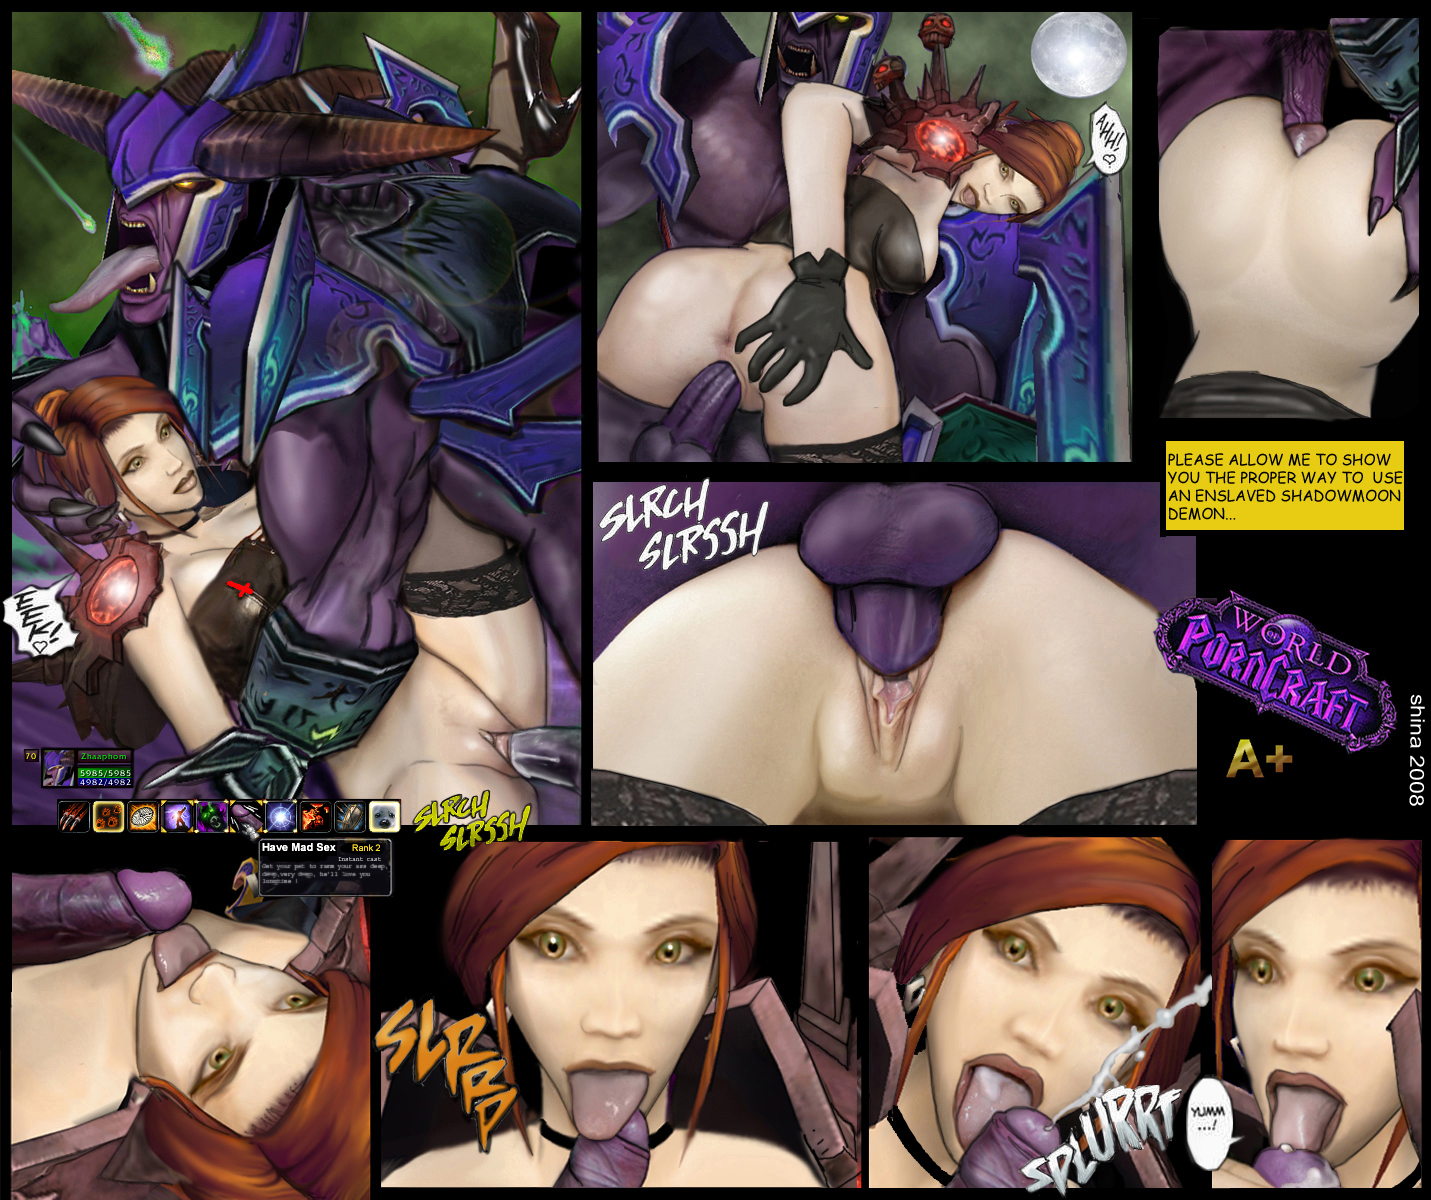 Warcraft 3 dota porn map erotic photos